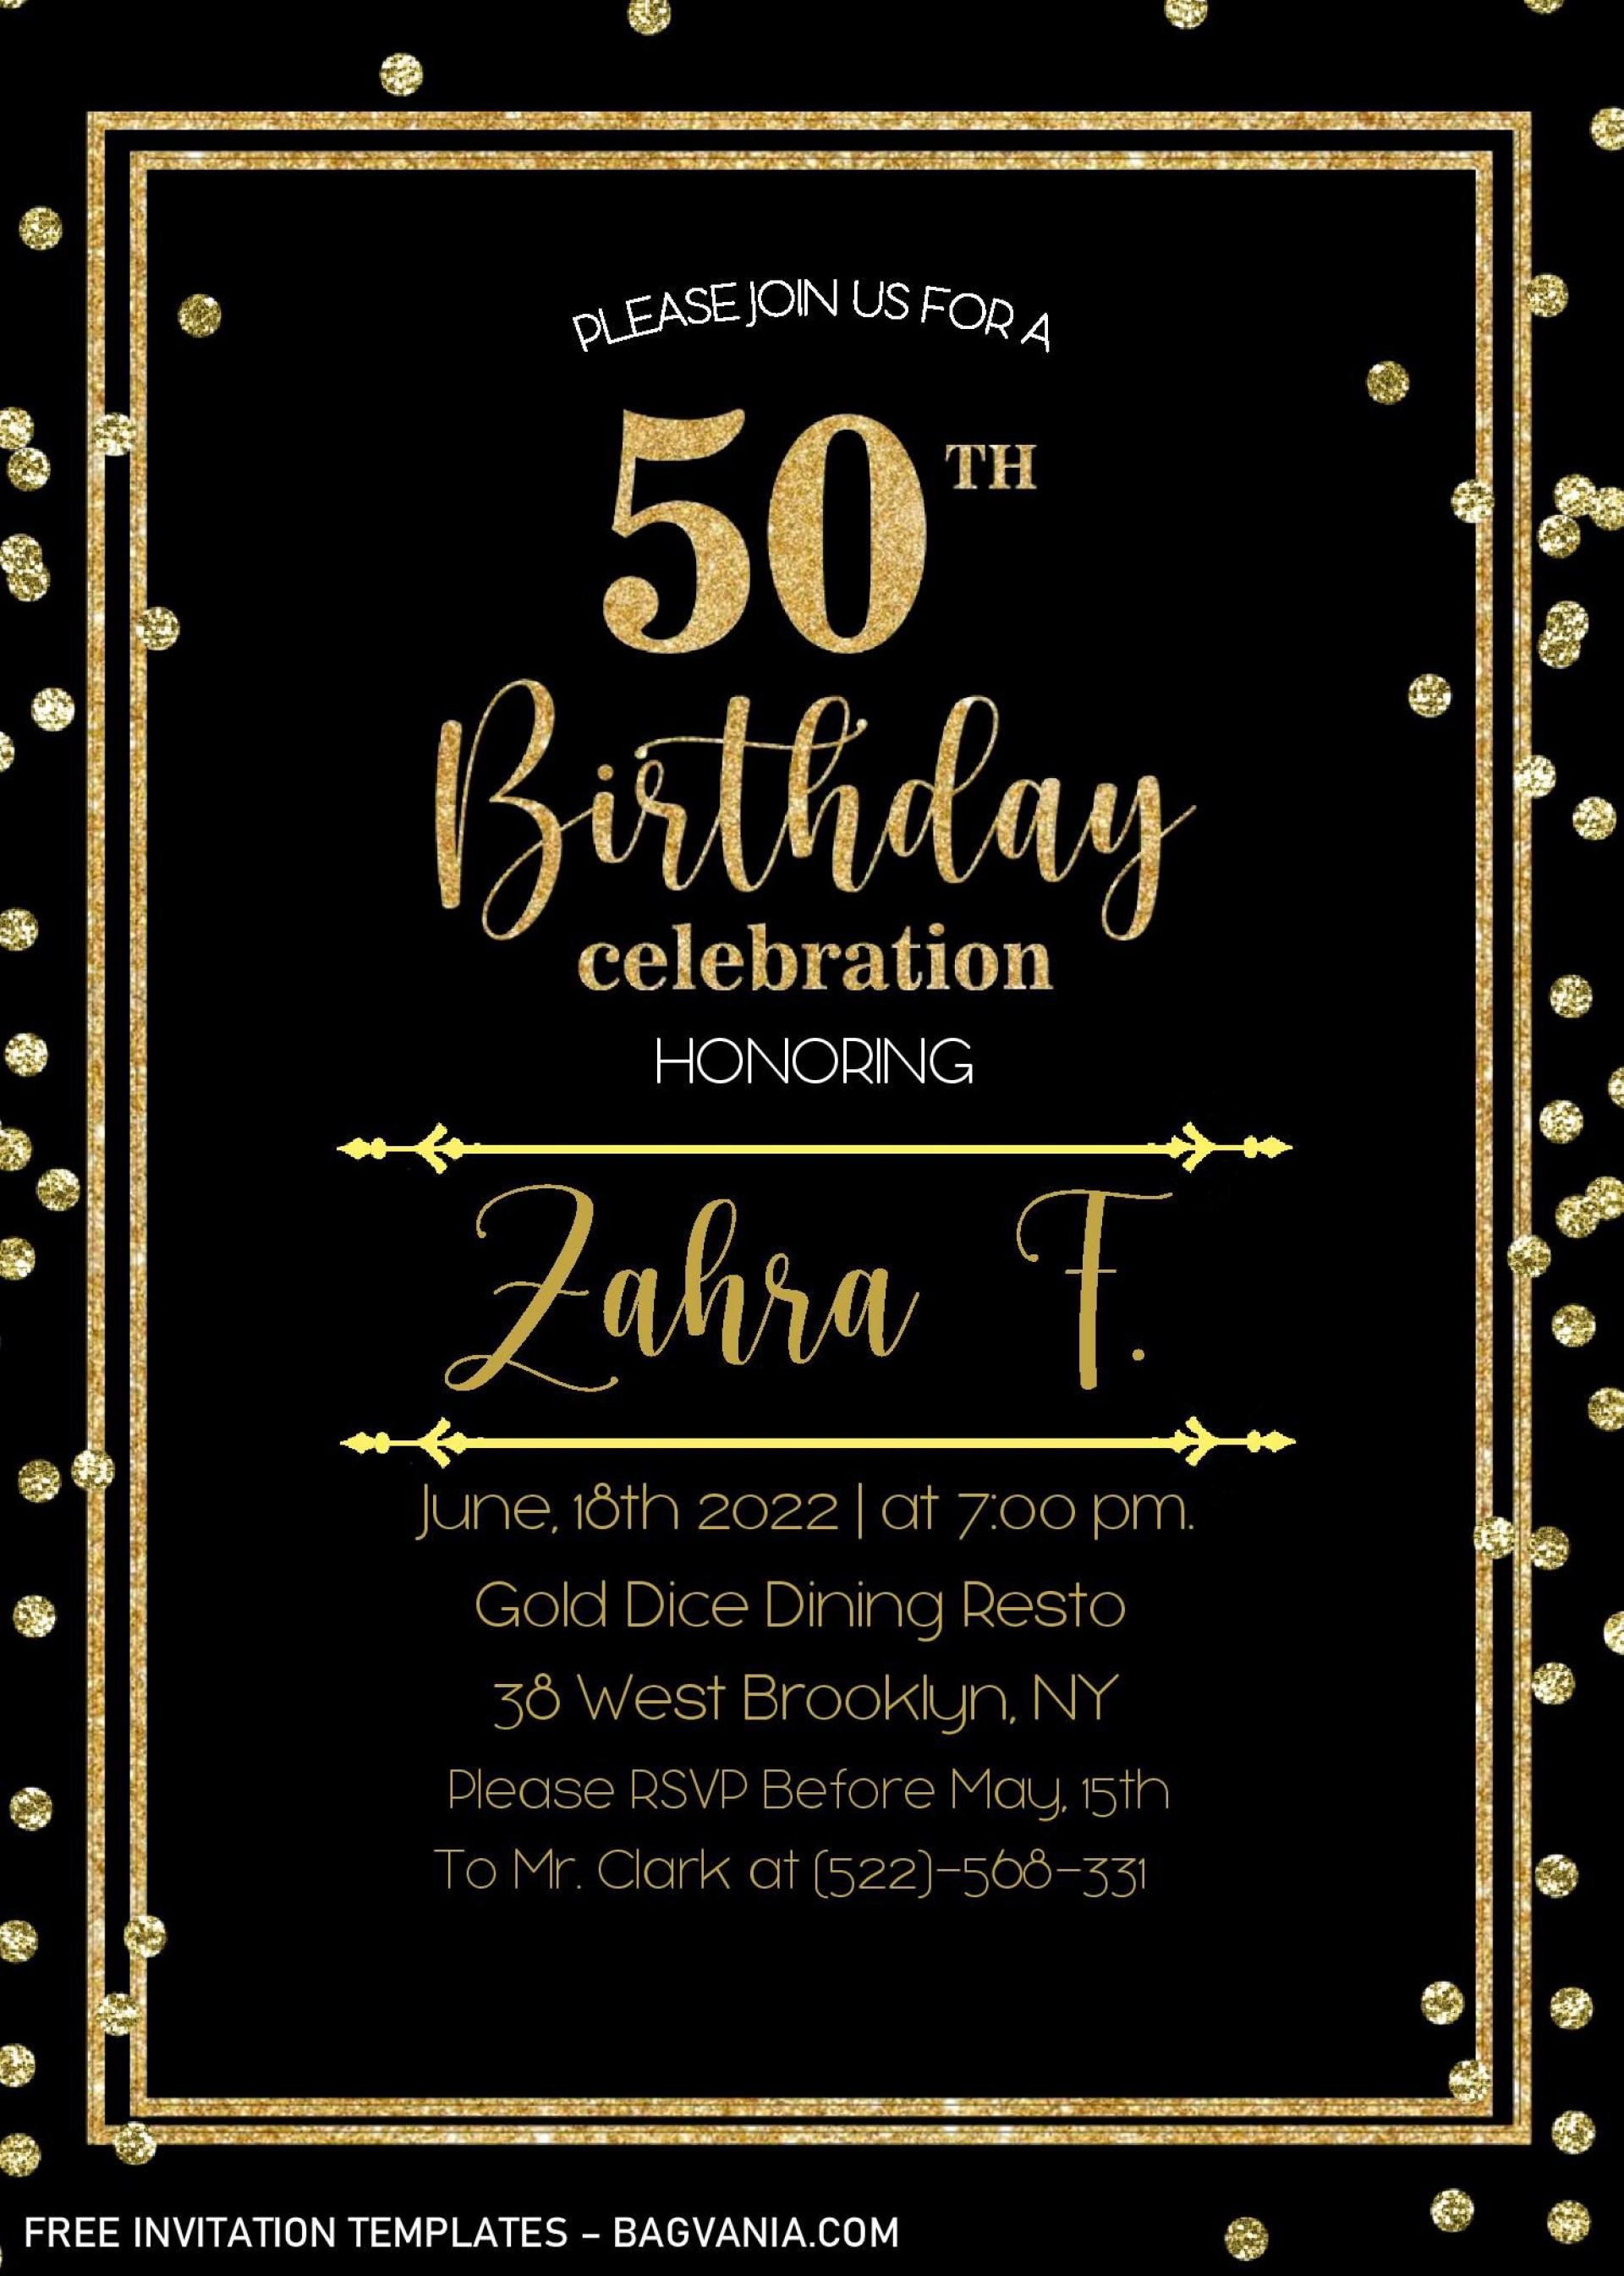 002 Striking Microsoft Word 50th Birthday Invitation Template Image  Editable Wedding Anniversary1920